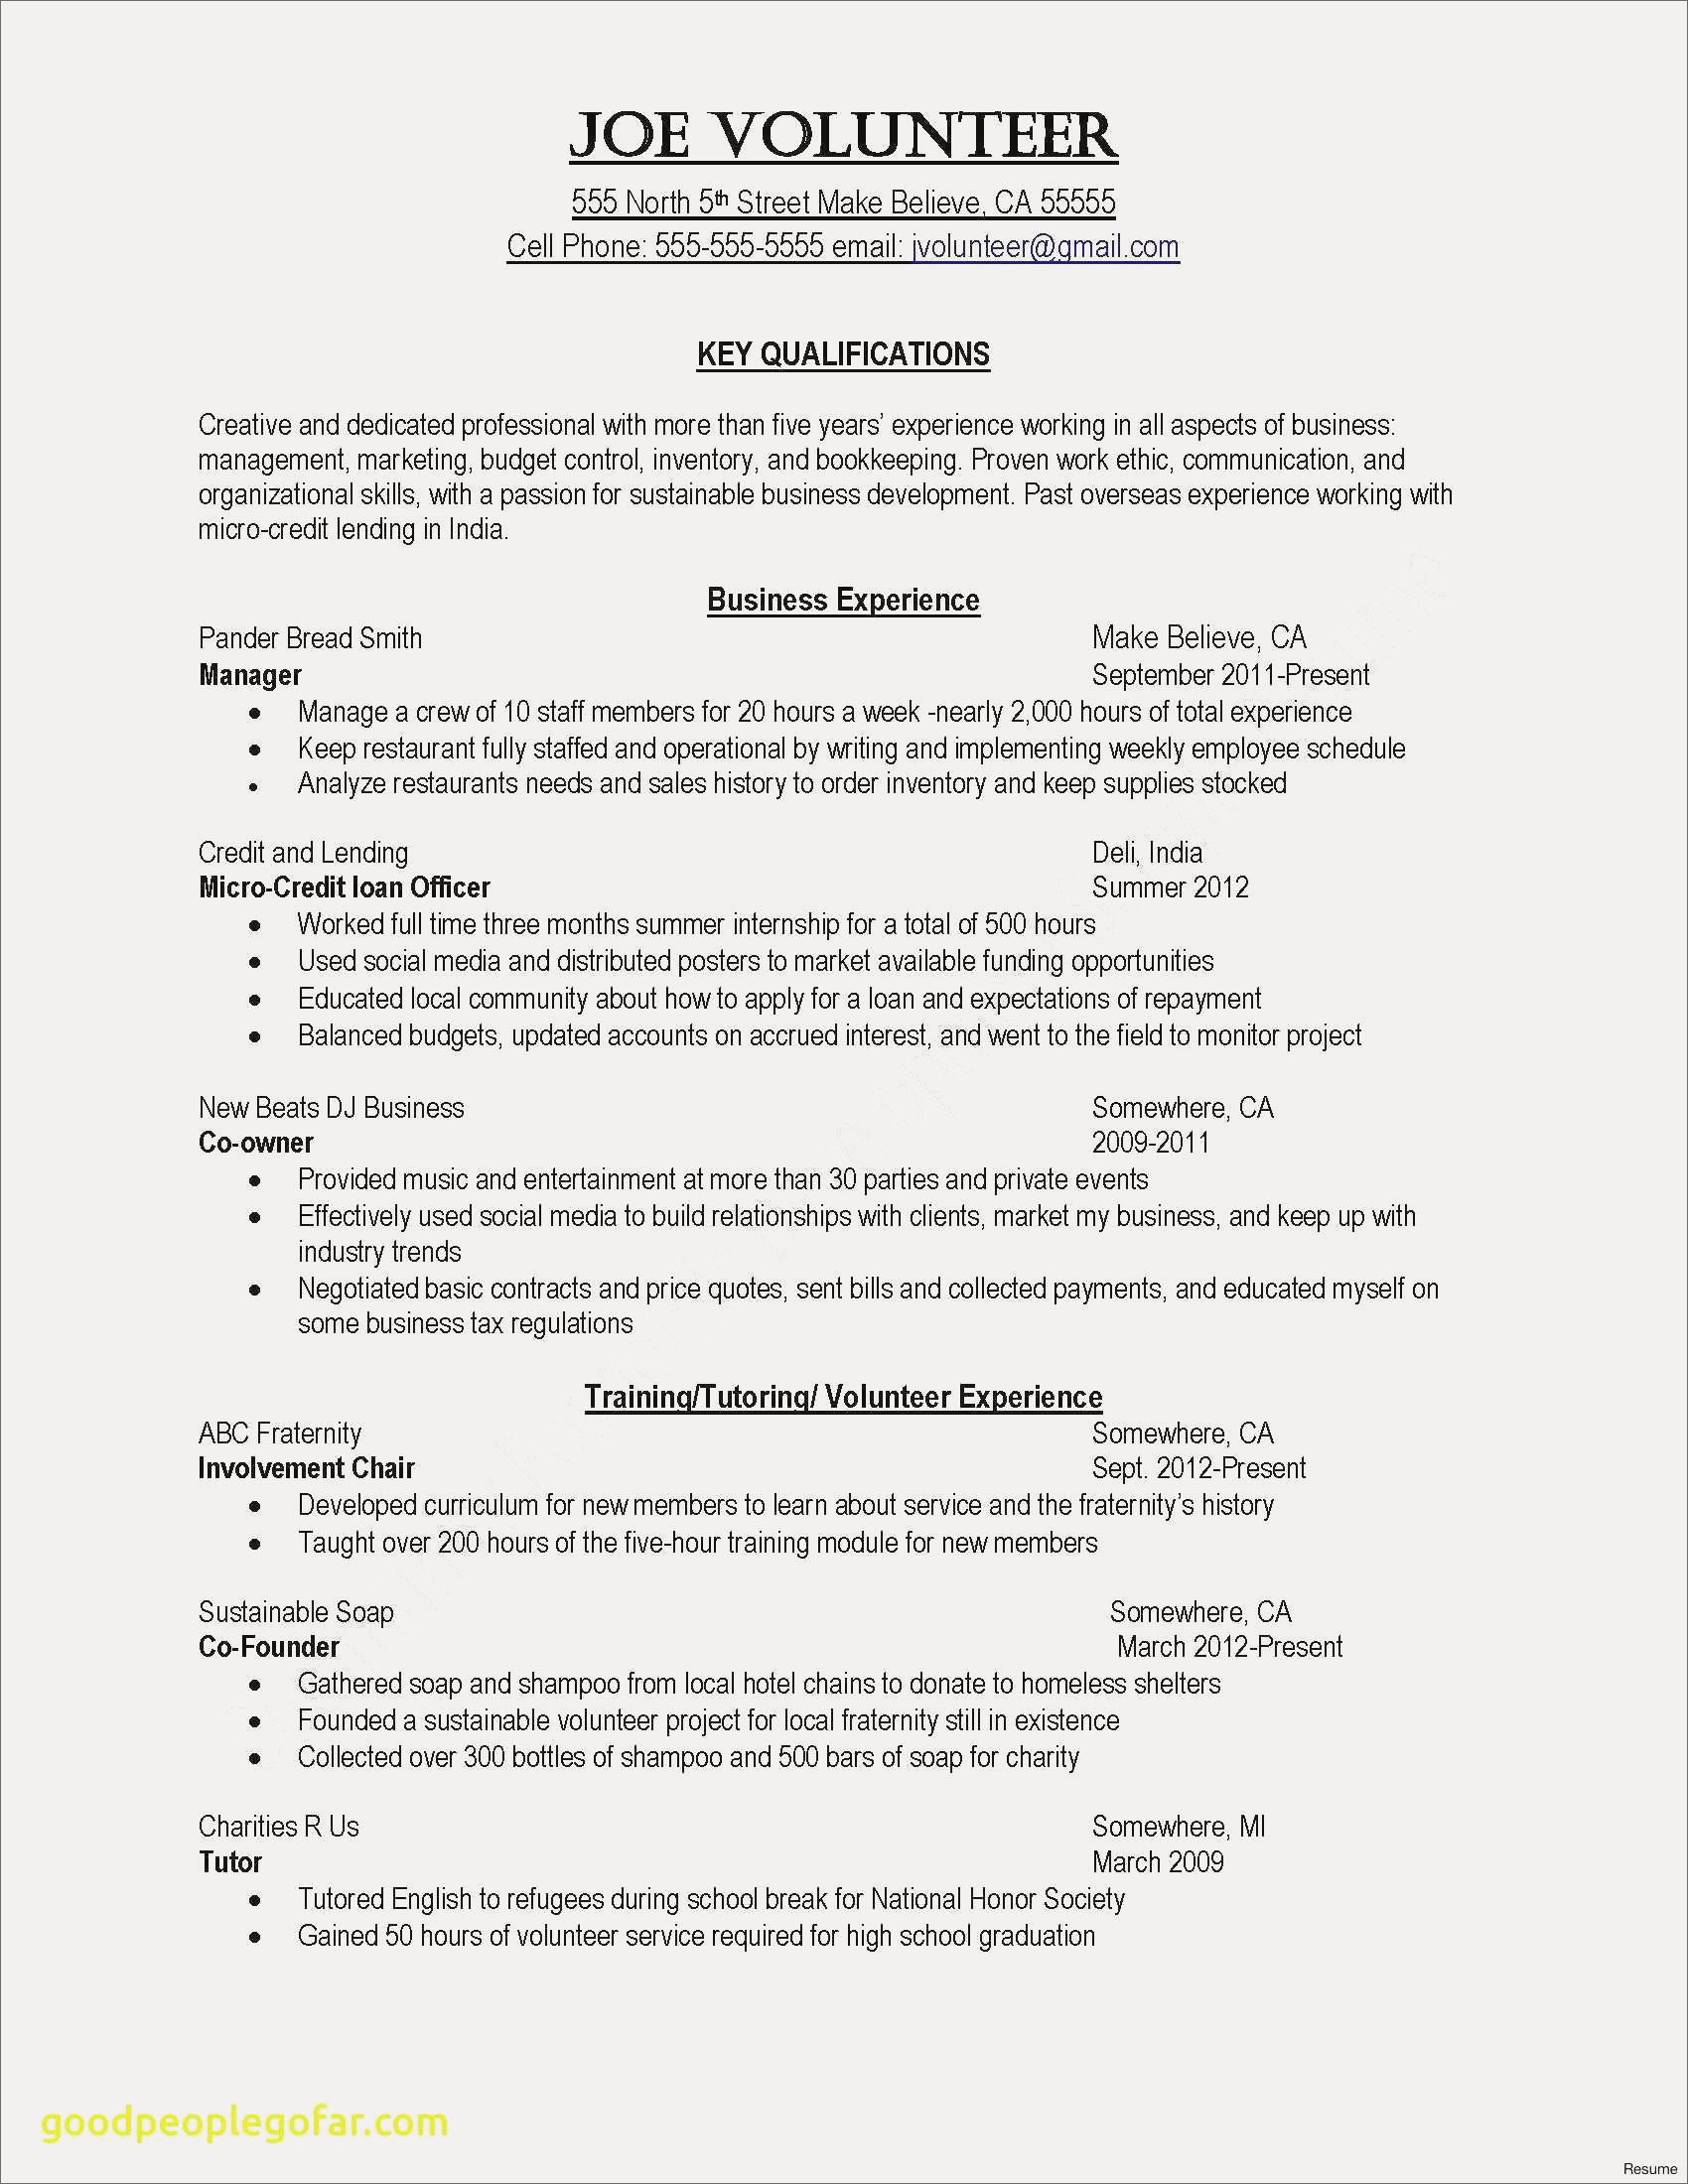 resume ideas for stay at home moms Collection-New Stay at Home Mom Resume Sample 4-c